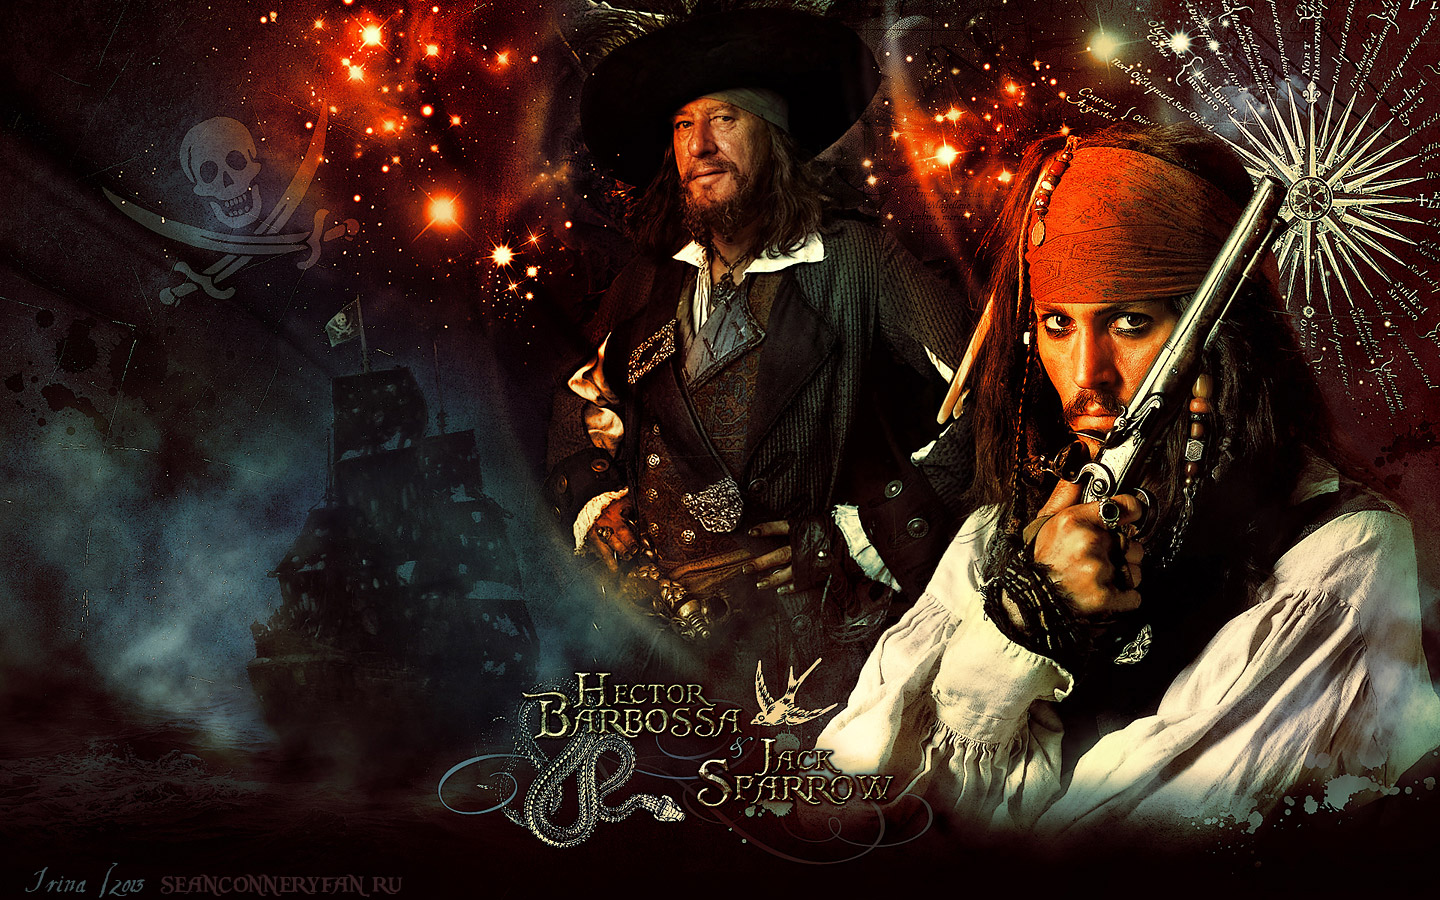 Пираты Карибского моря  (Pirates of the Caribbean), Капитан Джек Воробей, Гектор Барбосса, Jack Sparrow & Hector Barbossa, Джонни Депп (Johnny Depp)  Wallpaper